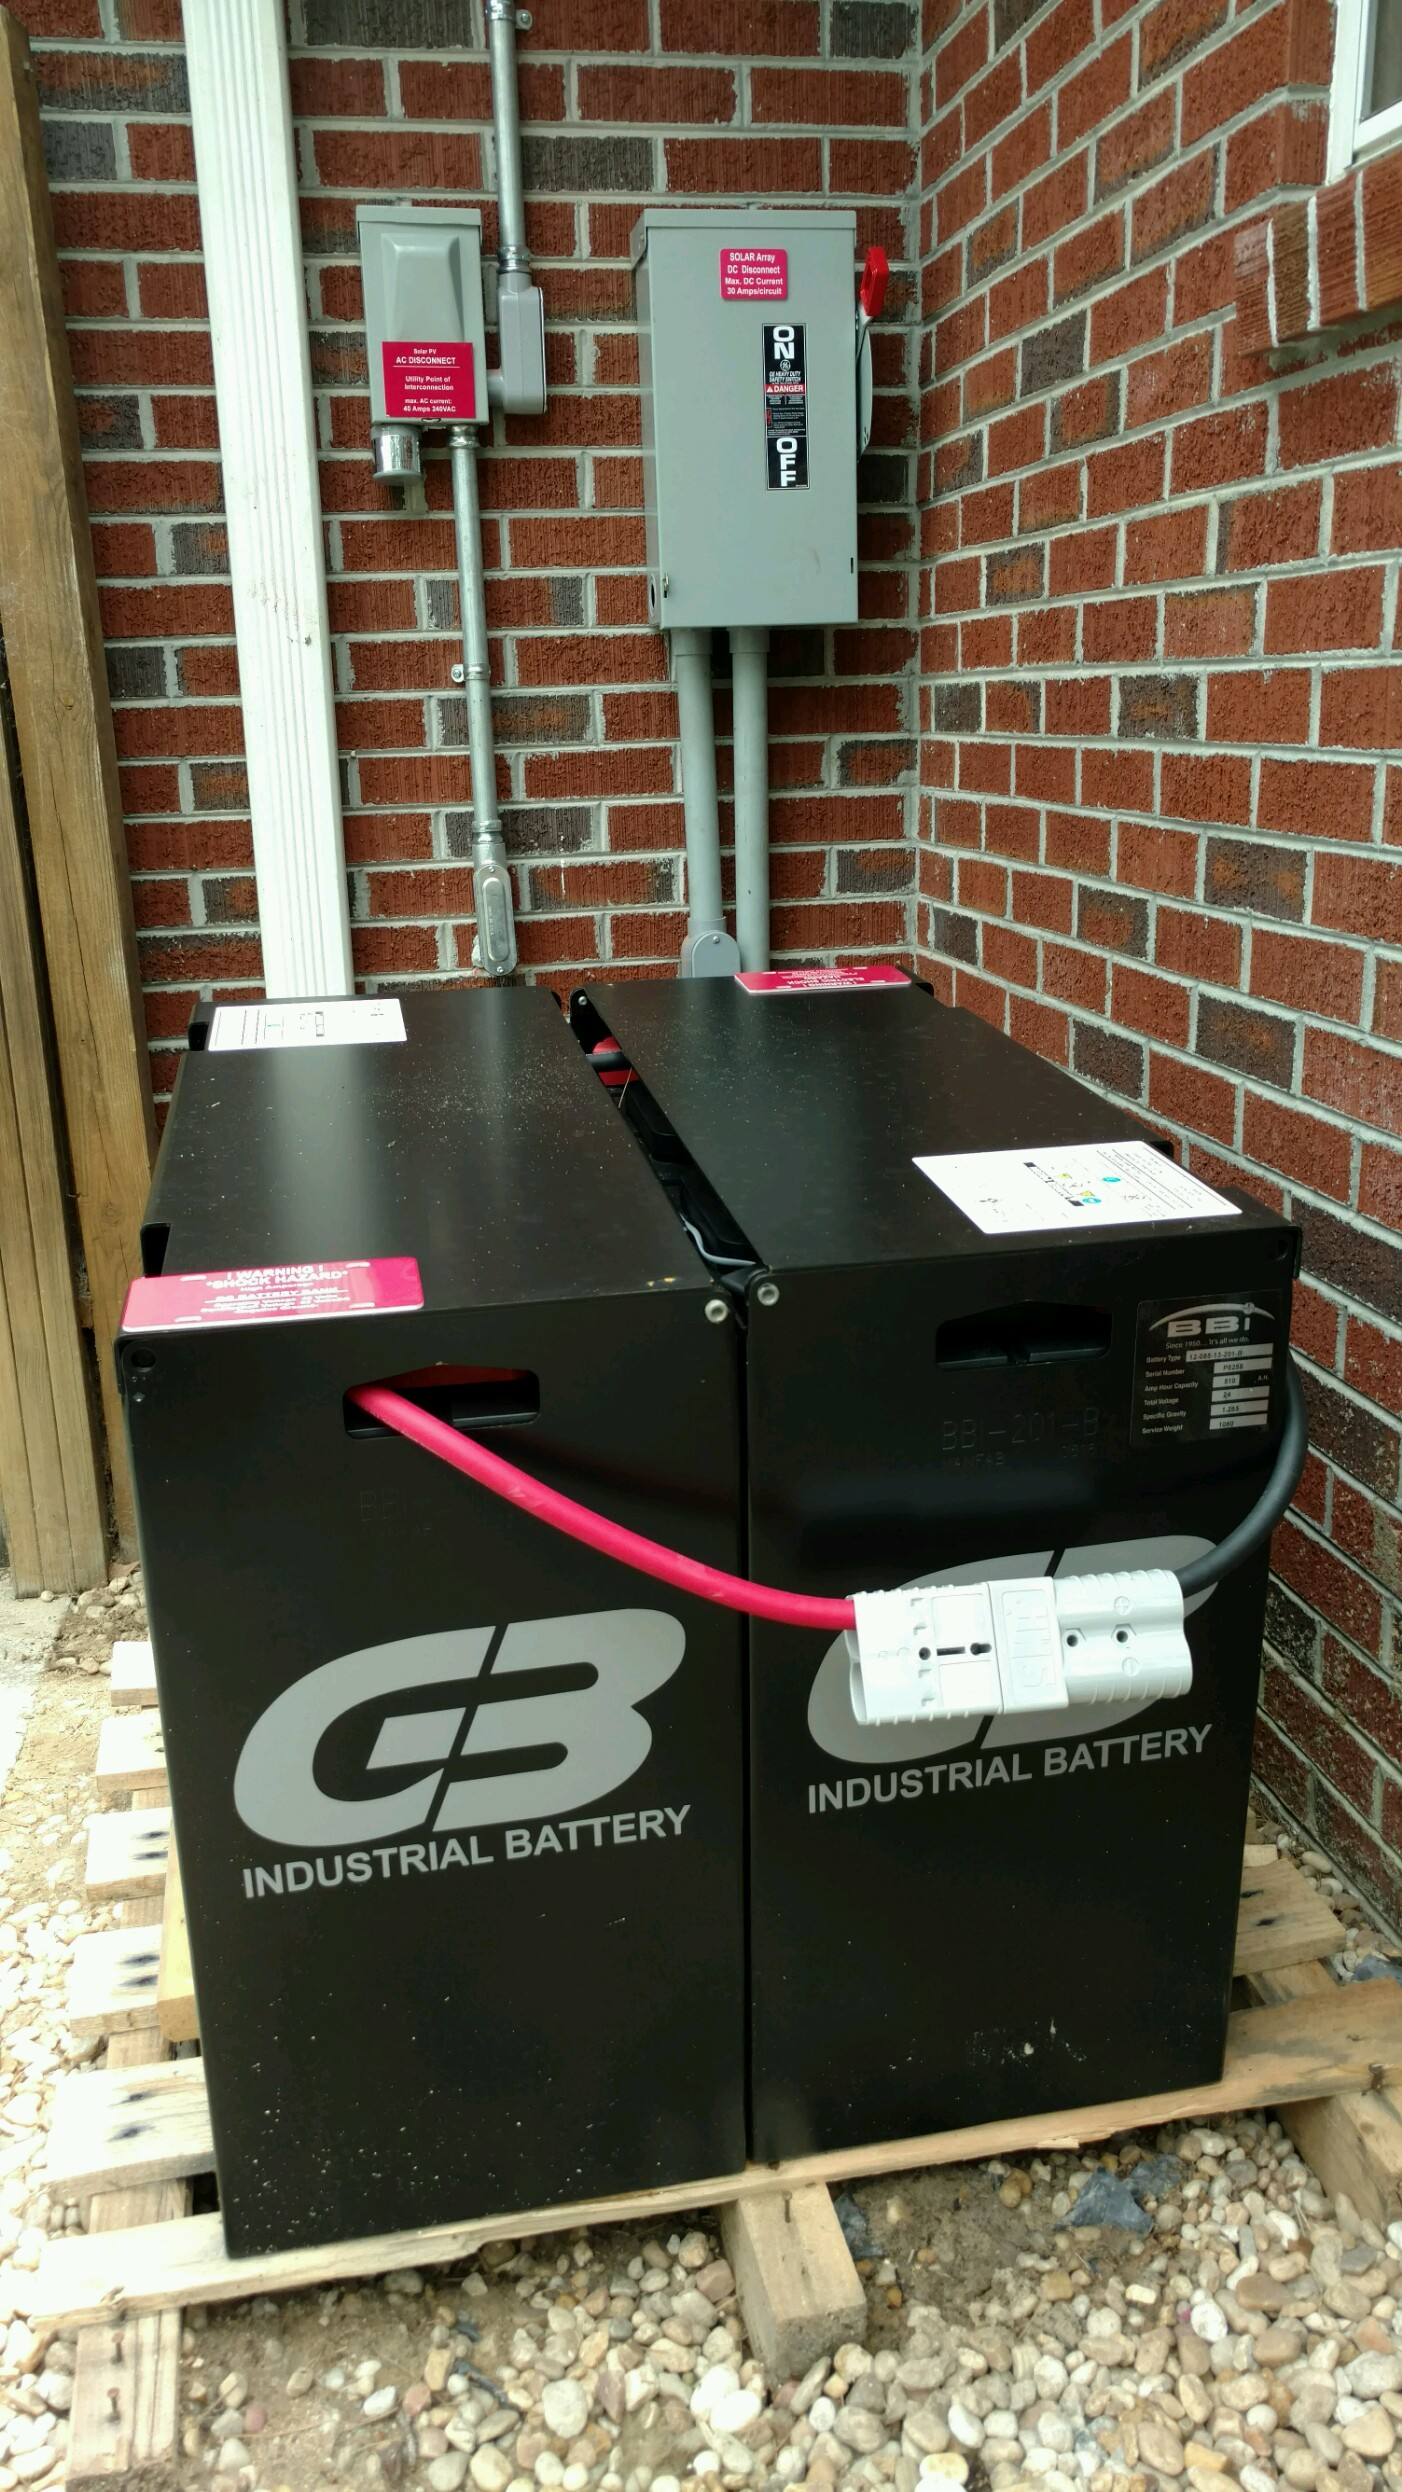 Forklift Battery Price List New Reconditioned Lift Truck 05 R6 Rectifier Wiring Diagrams Http Giantbatterycom Solar20batteryforklift20battery20for20solarsolar One20batteryforklift20battery20for20off20grid